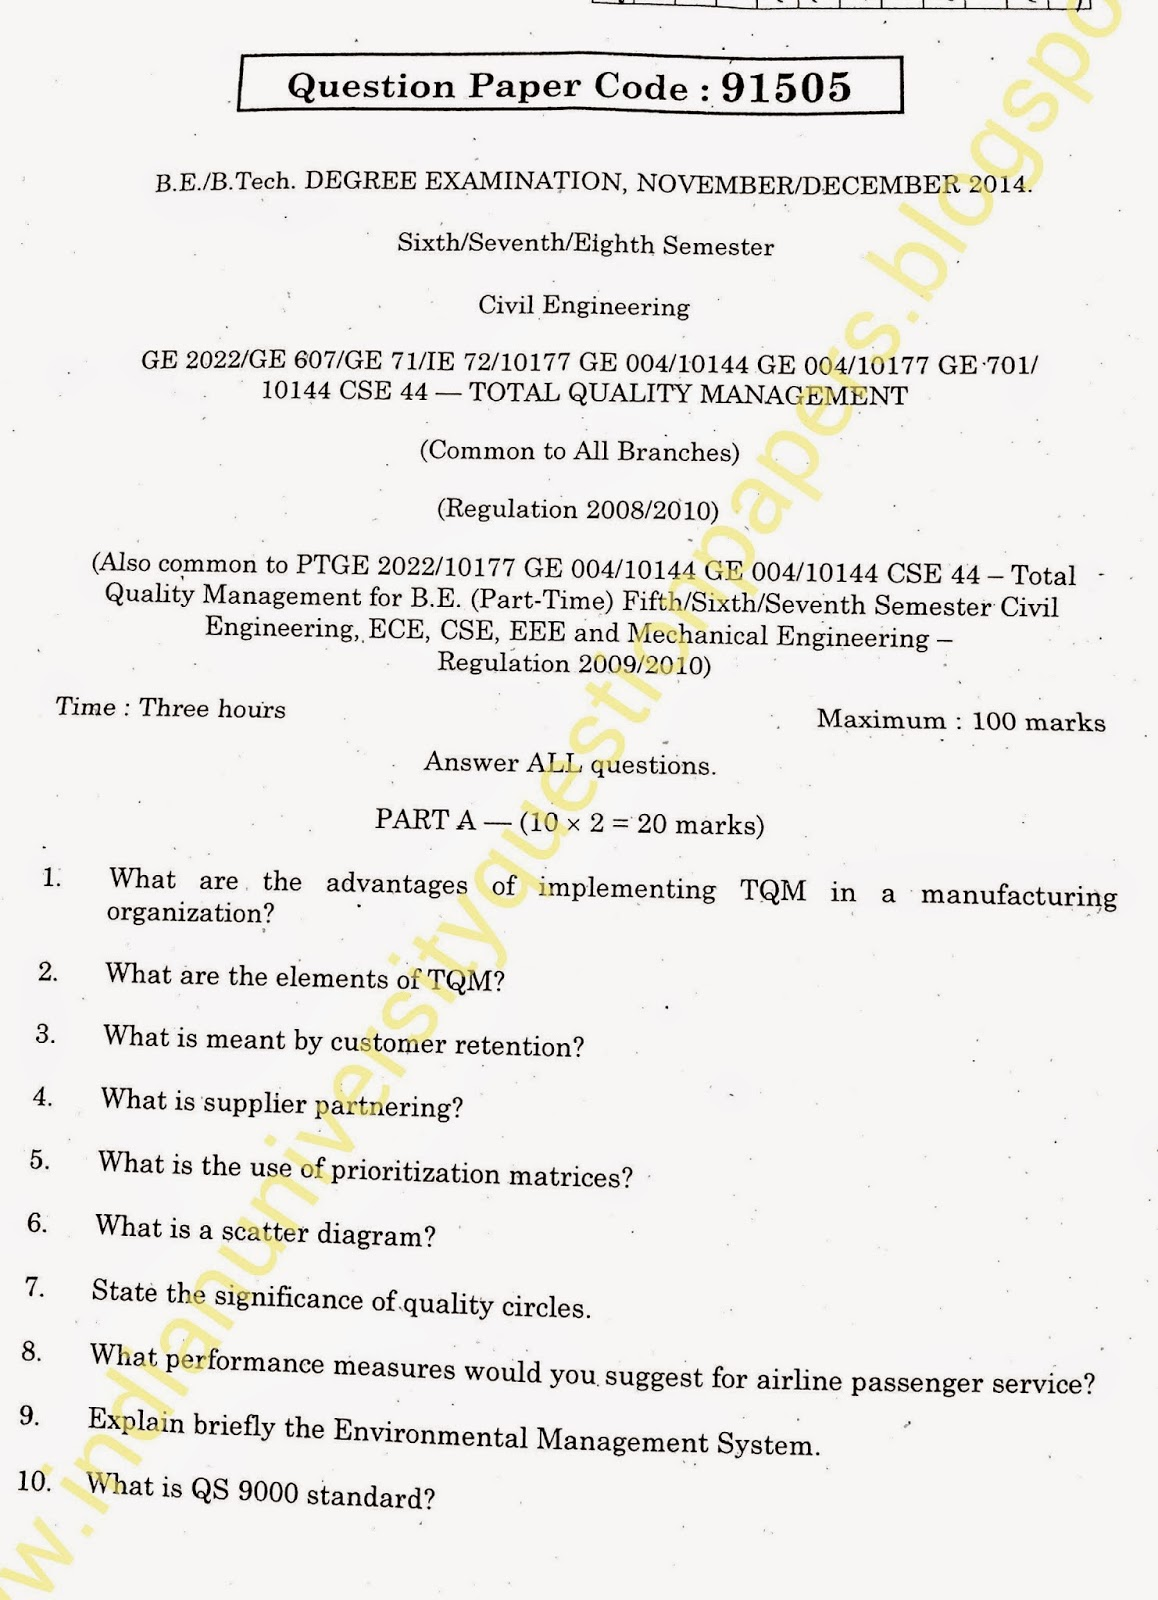 ba9203 total quality management question papers Ge2022 tqm question papers collections download - tqm previous year question papers rejinpaulcom provides anna university previous year model question papers for all departments tqm ge2022 total quality management question papers has been provided for all students.